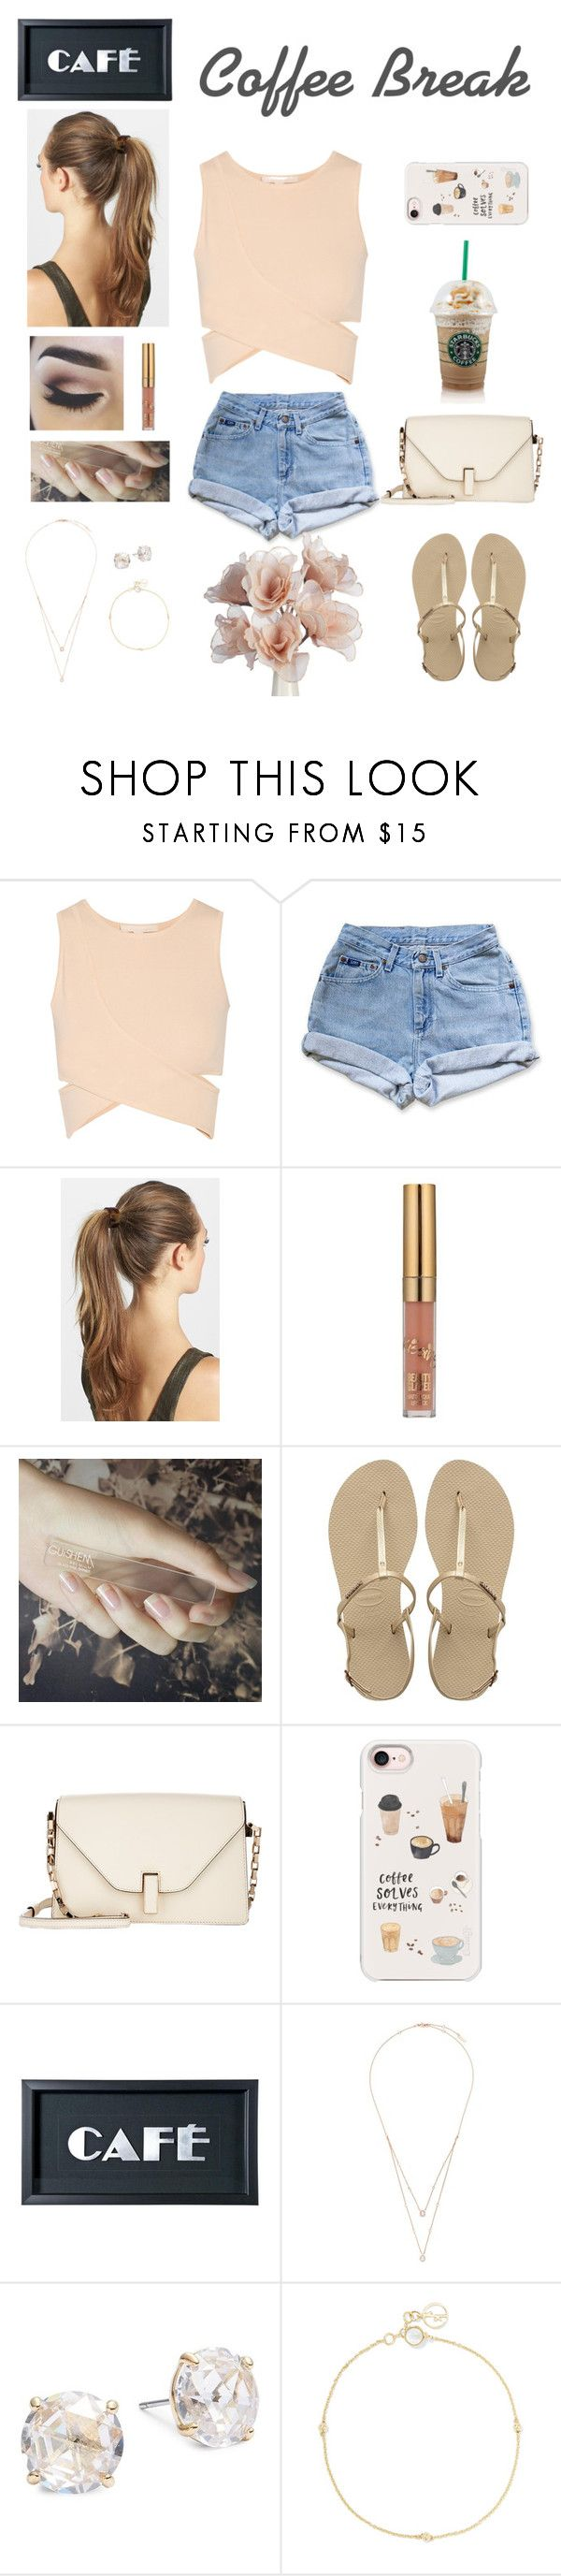 """""""Coffee Errand"""" by beauty55 ❤ liked on Polyvore featuring Jonathan Simkhai, Levi's, France Luxe, GUiSHEM, Havaianas, Valextra, Casetify, Messika, Kate Spade and Anissa Kermiche"""